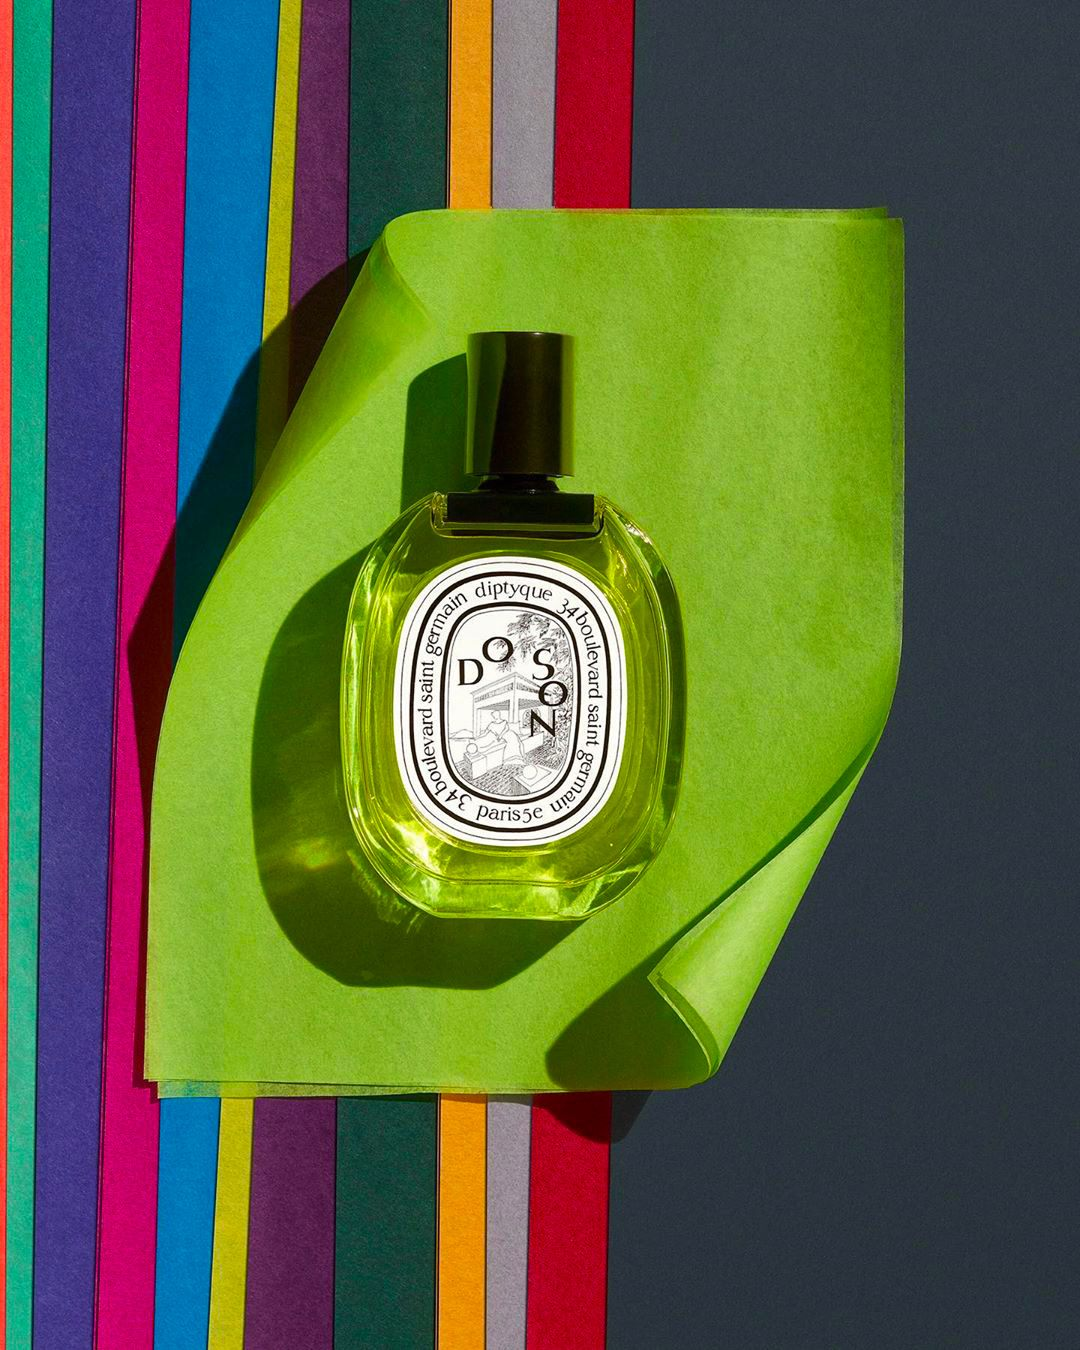 Diptyque Travel-Sized Perfume